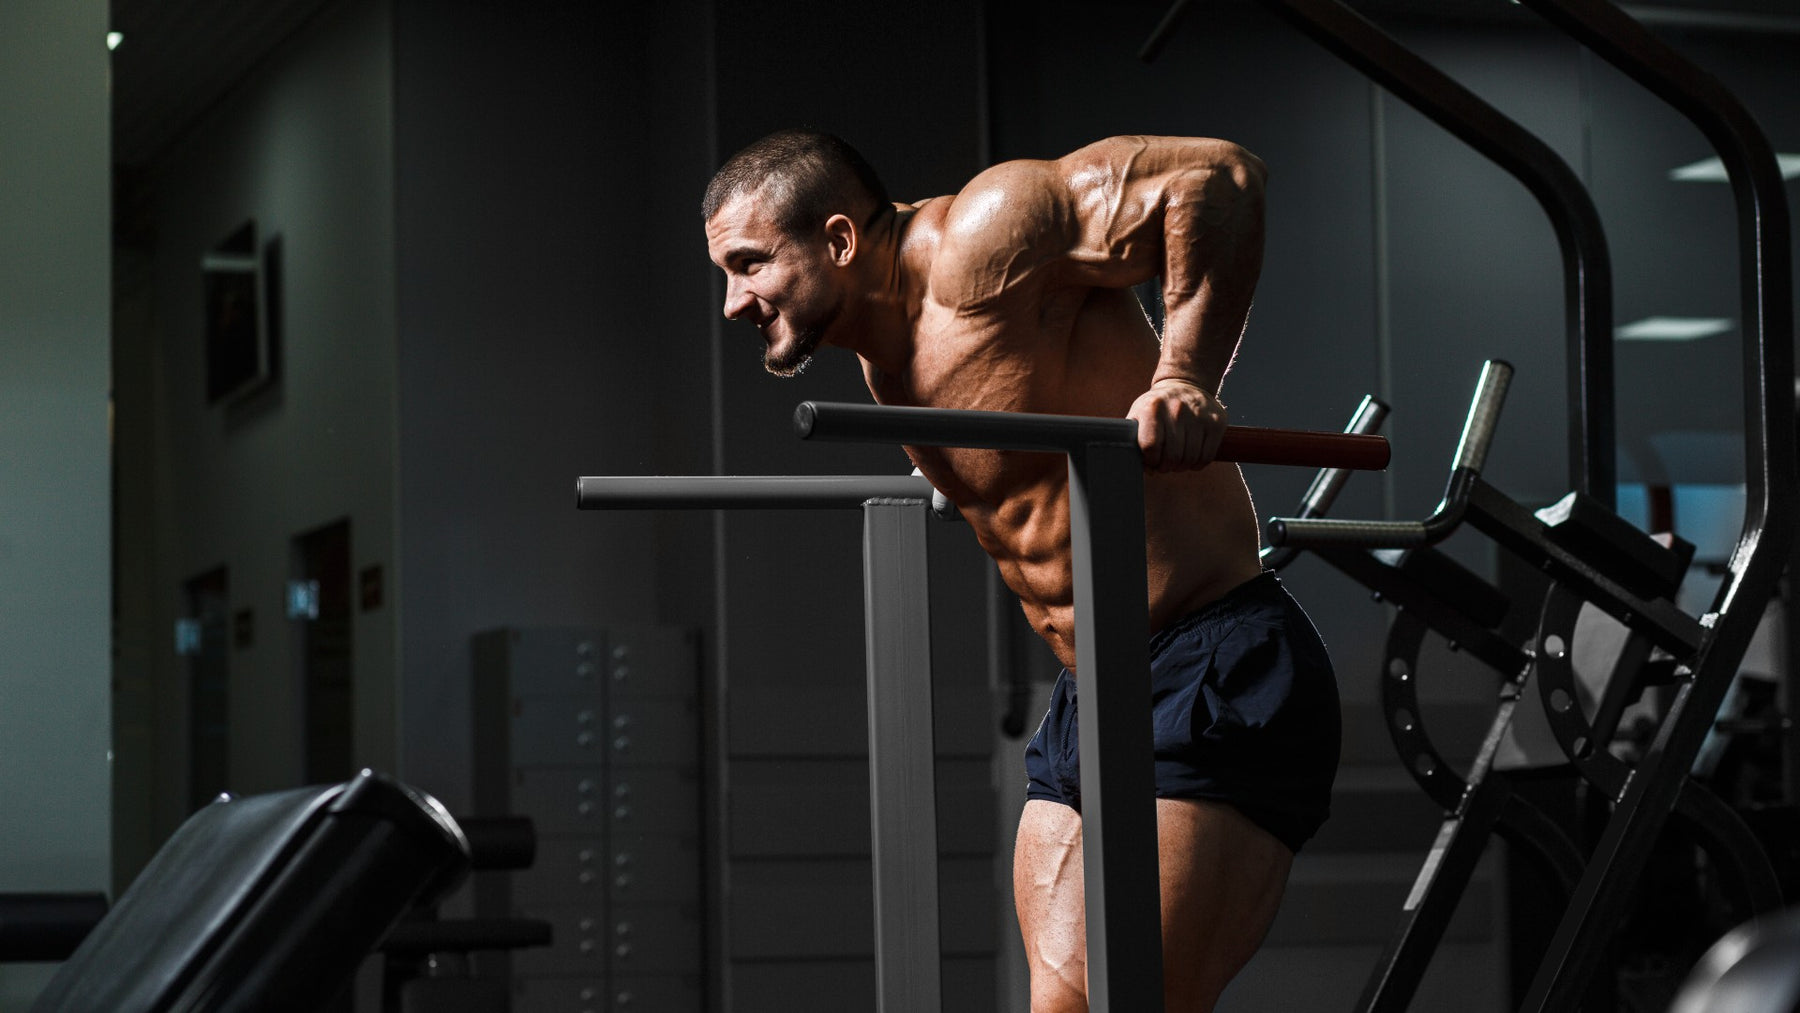 How to Build Muscle Using Limited Equipment